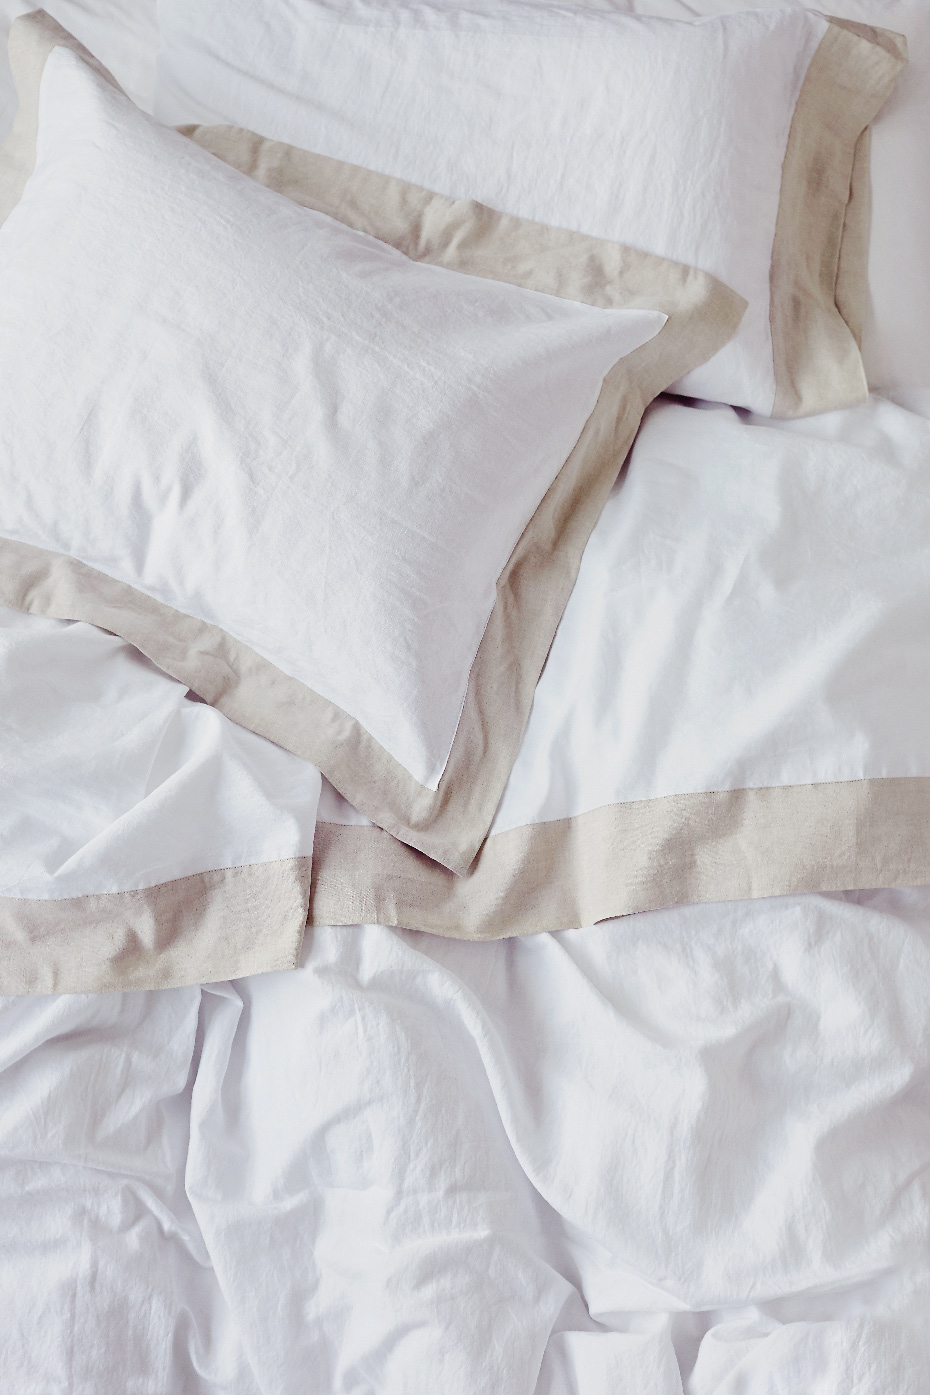 Stacey Van Berkel Photography I White and beige bed linens and pillow I Au LIt Fine Linens I Toronto, Ontario, Canada